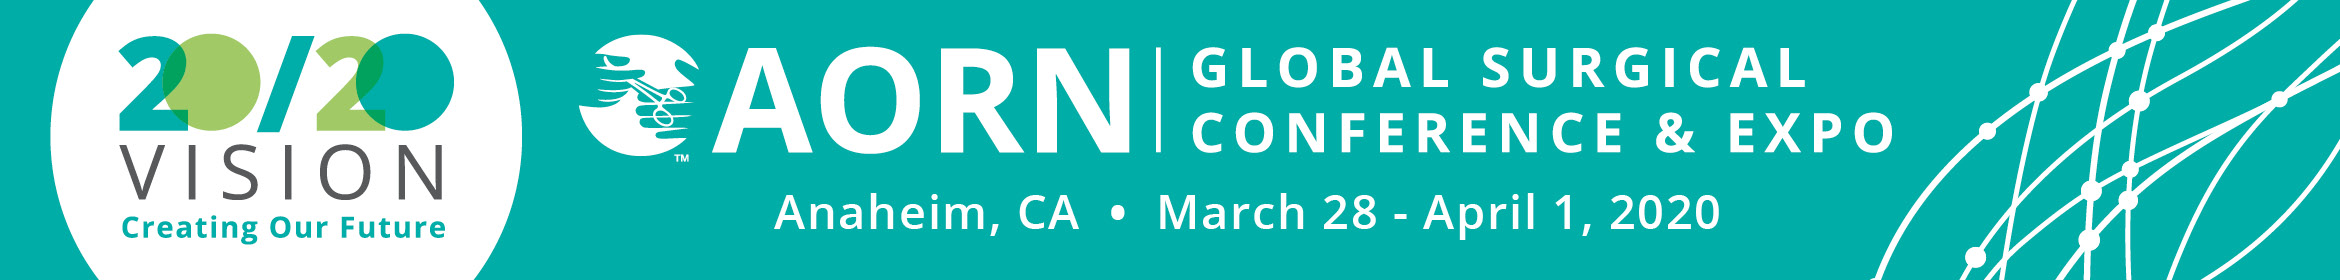 AORN Global Surgical Conference & Expo 2020 Main banner